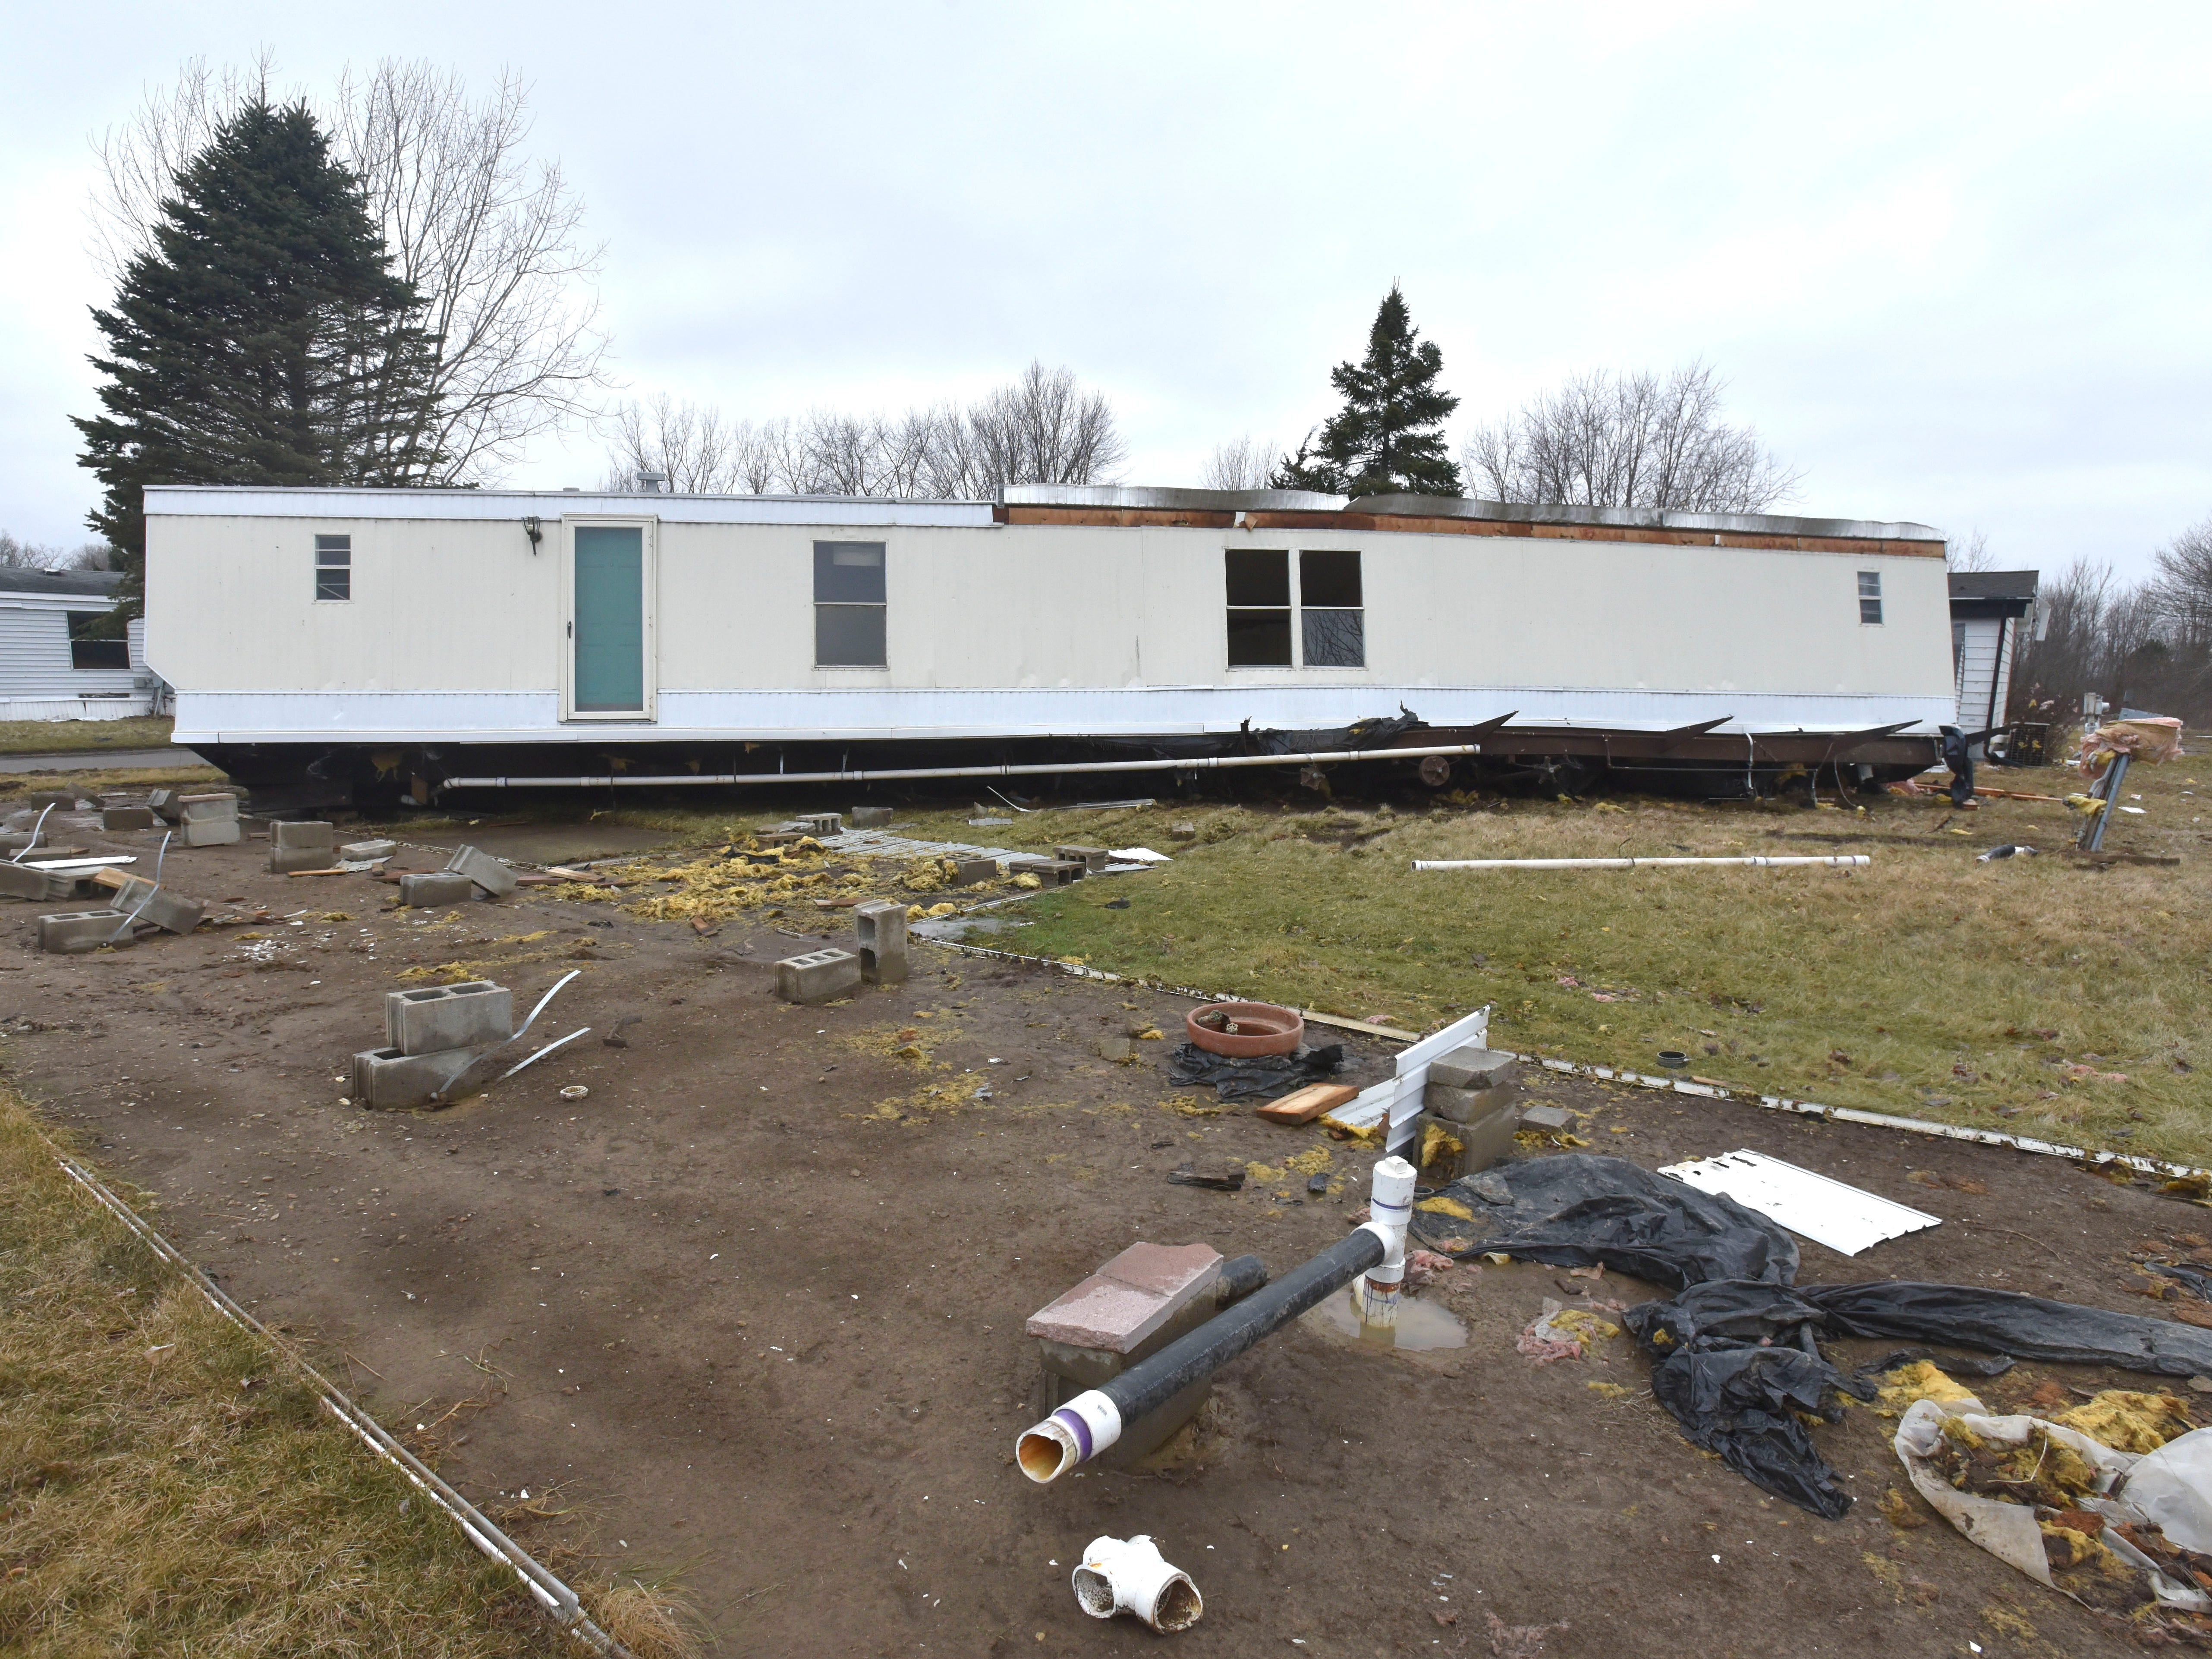 This mobile home at the at the Camelot Villa mobile home park in Mount Morris in Genesee County was lifted off its foundation.  No injuries were reported.